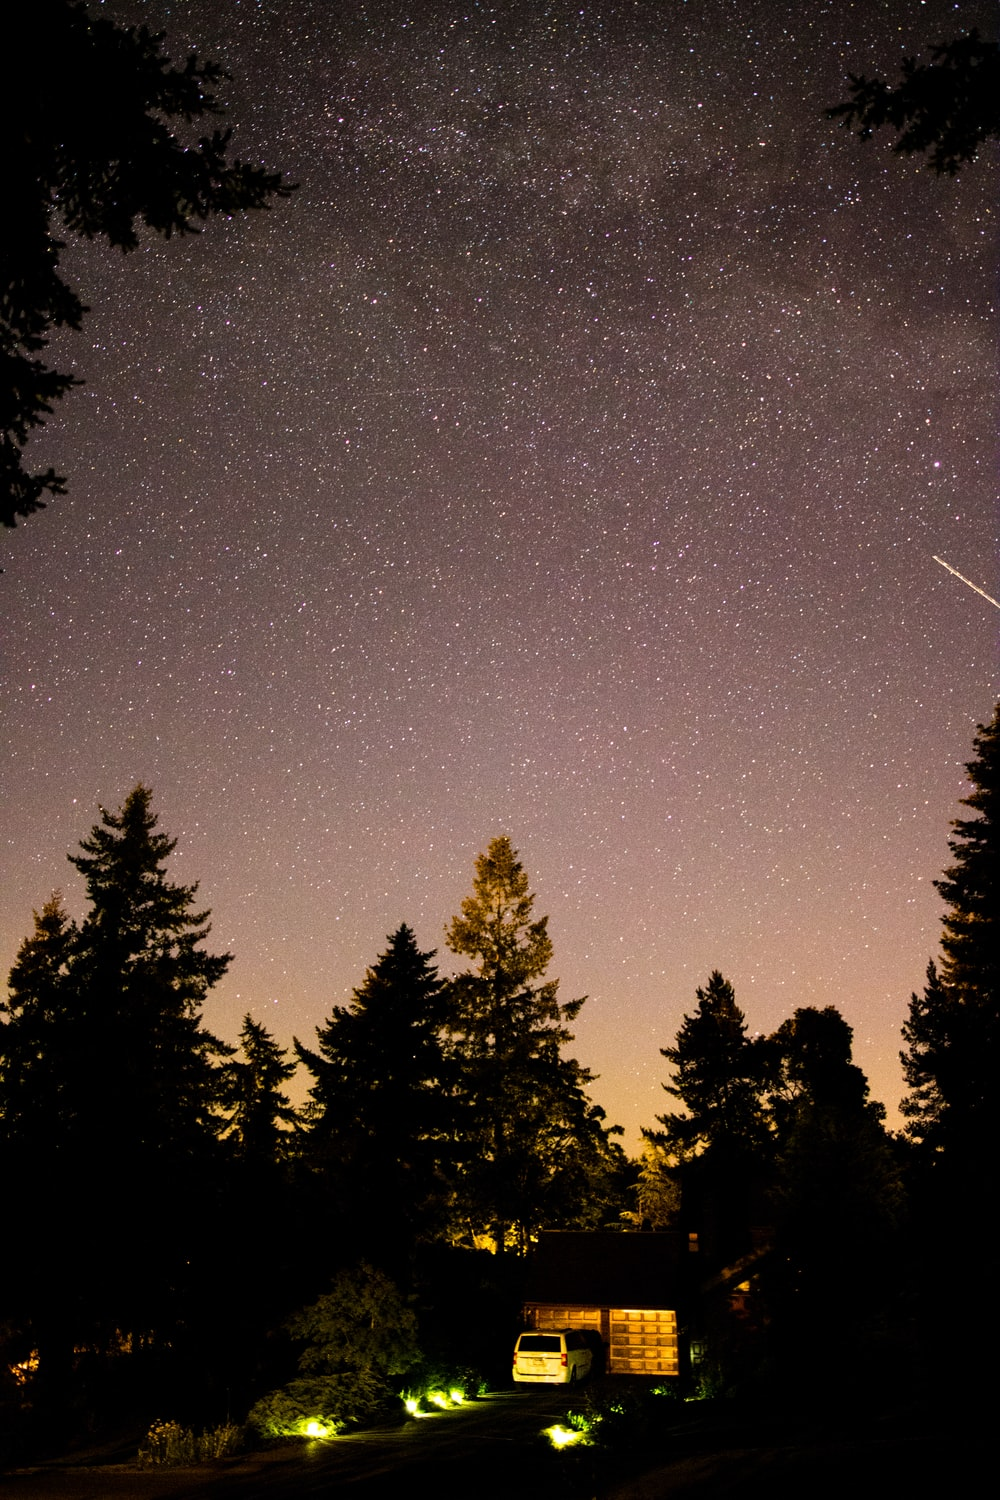 silhouette of vehicle and trees under starry sky